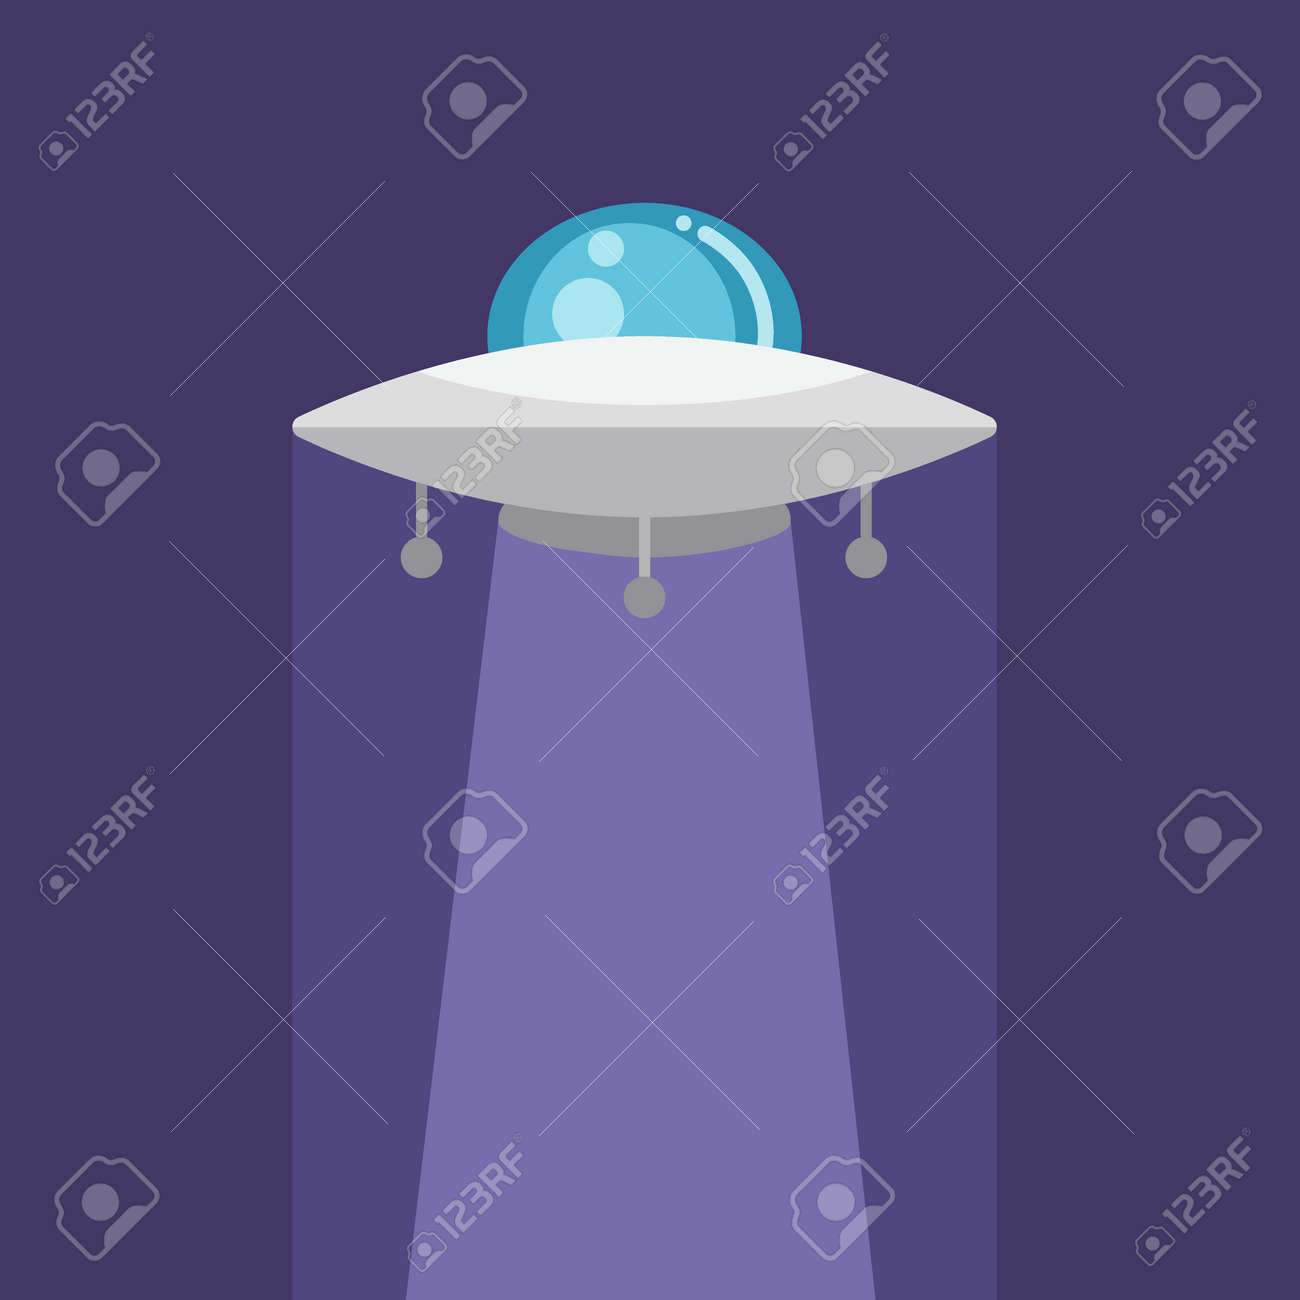 Ufo Icon Flat Design Of Shiny Alien Spaceship With Light On